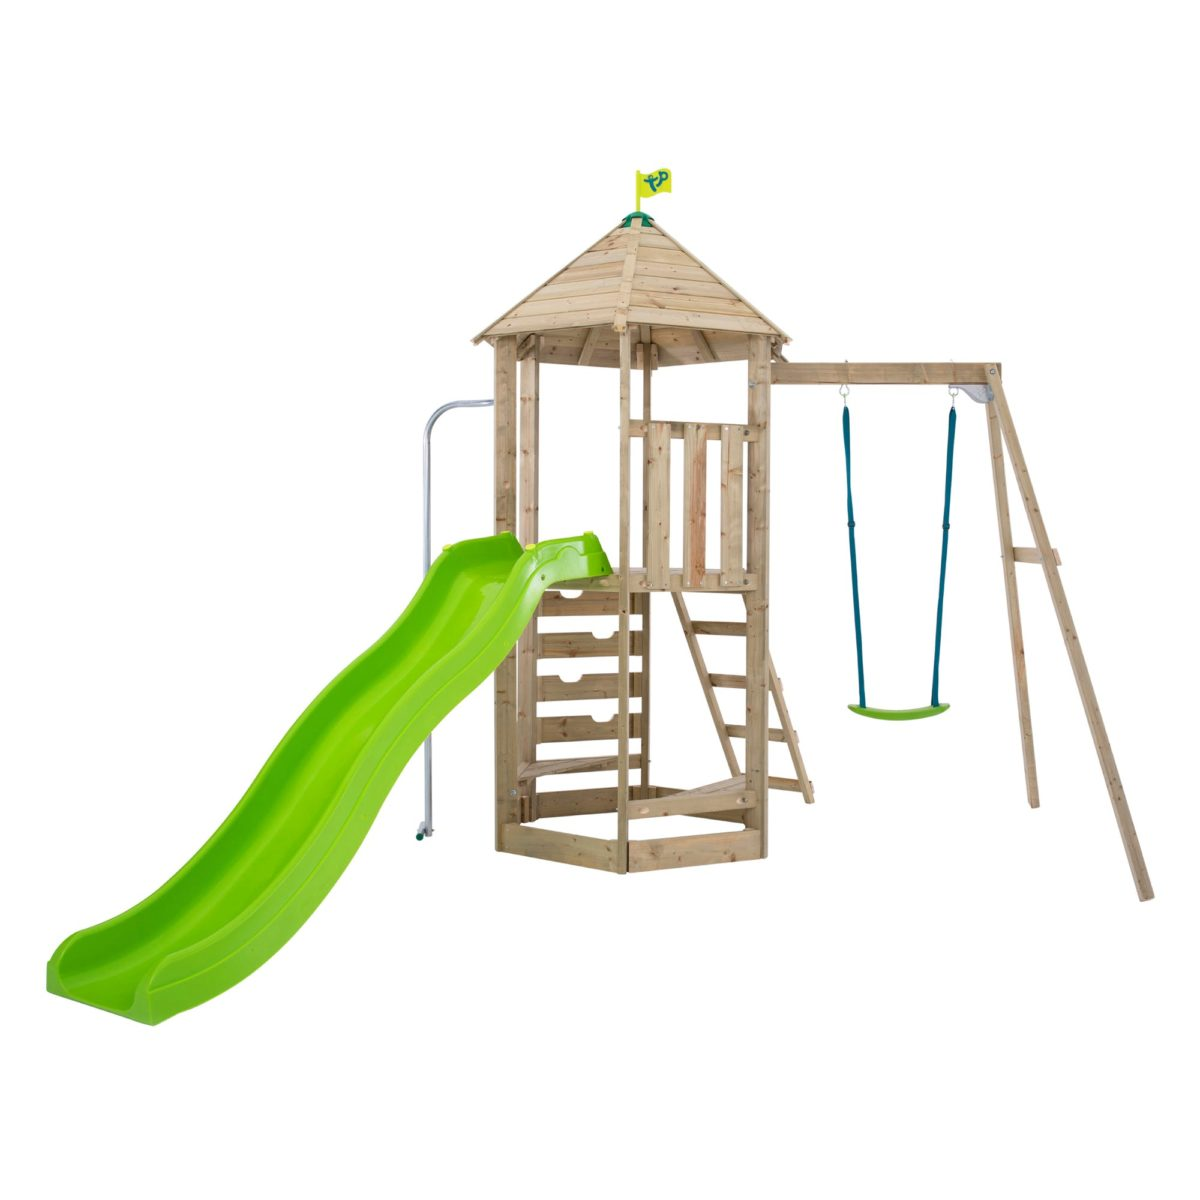 Tp Castlewood Sherborne Single Wooden Swing Set & Crazywavy Slide